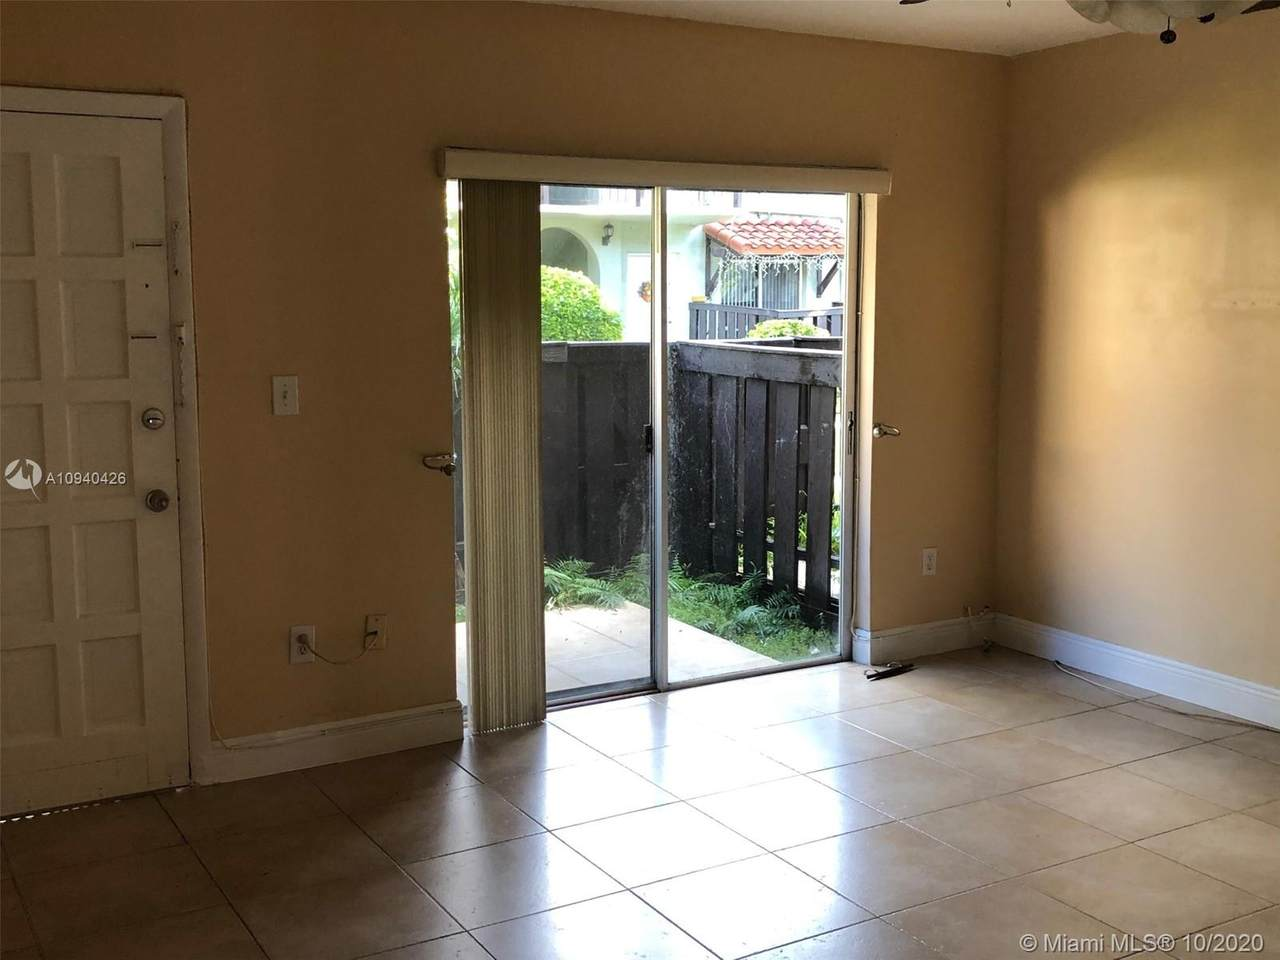 10790 Kendall Dr - Photo 1